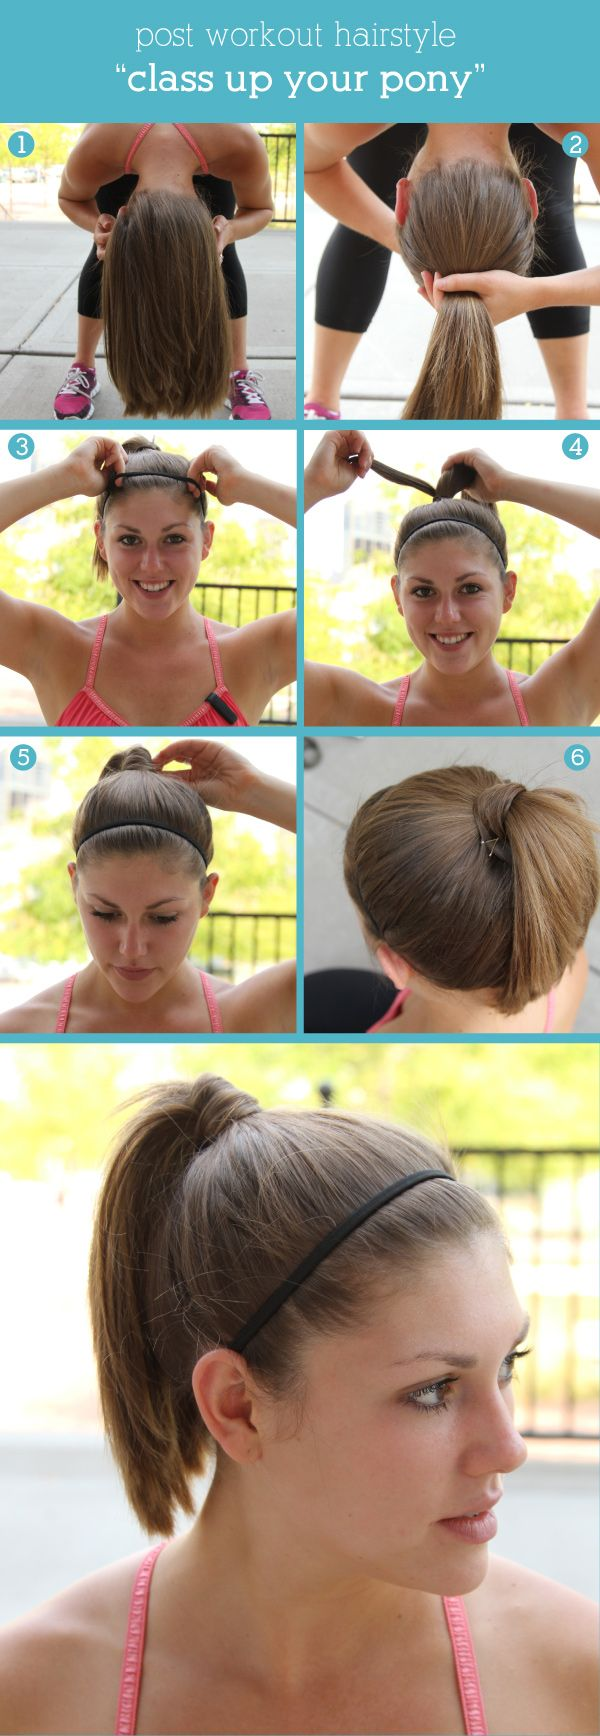 workout styles for hair 97 best images about hairstyles for working out on 9364